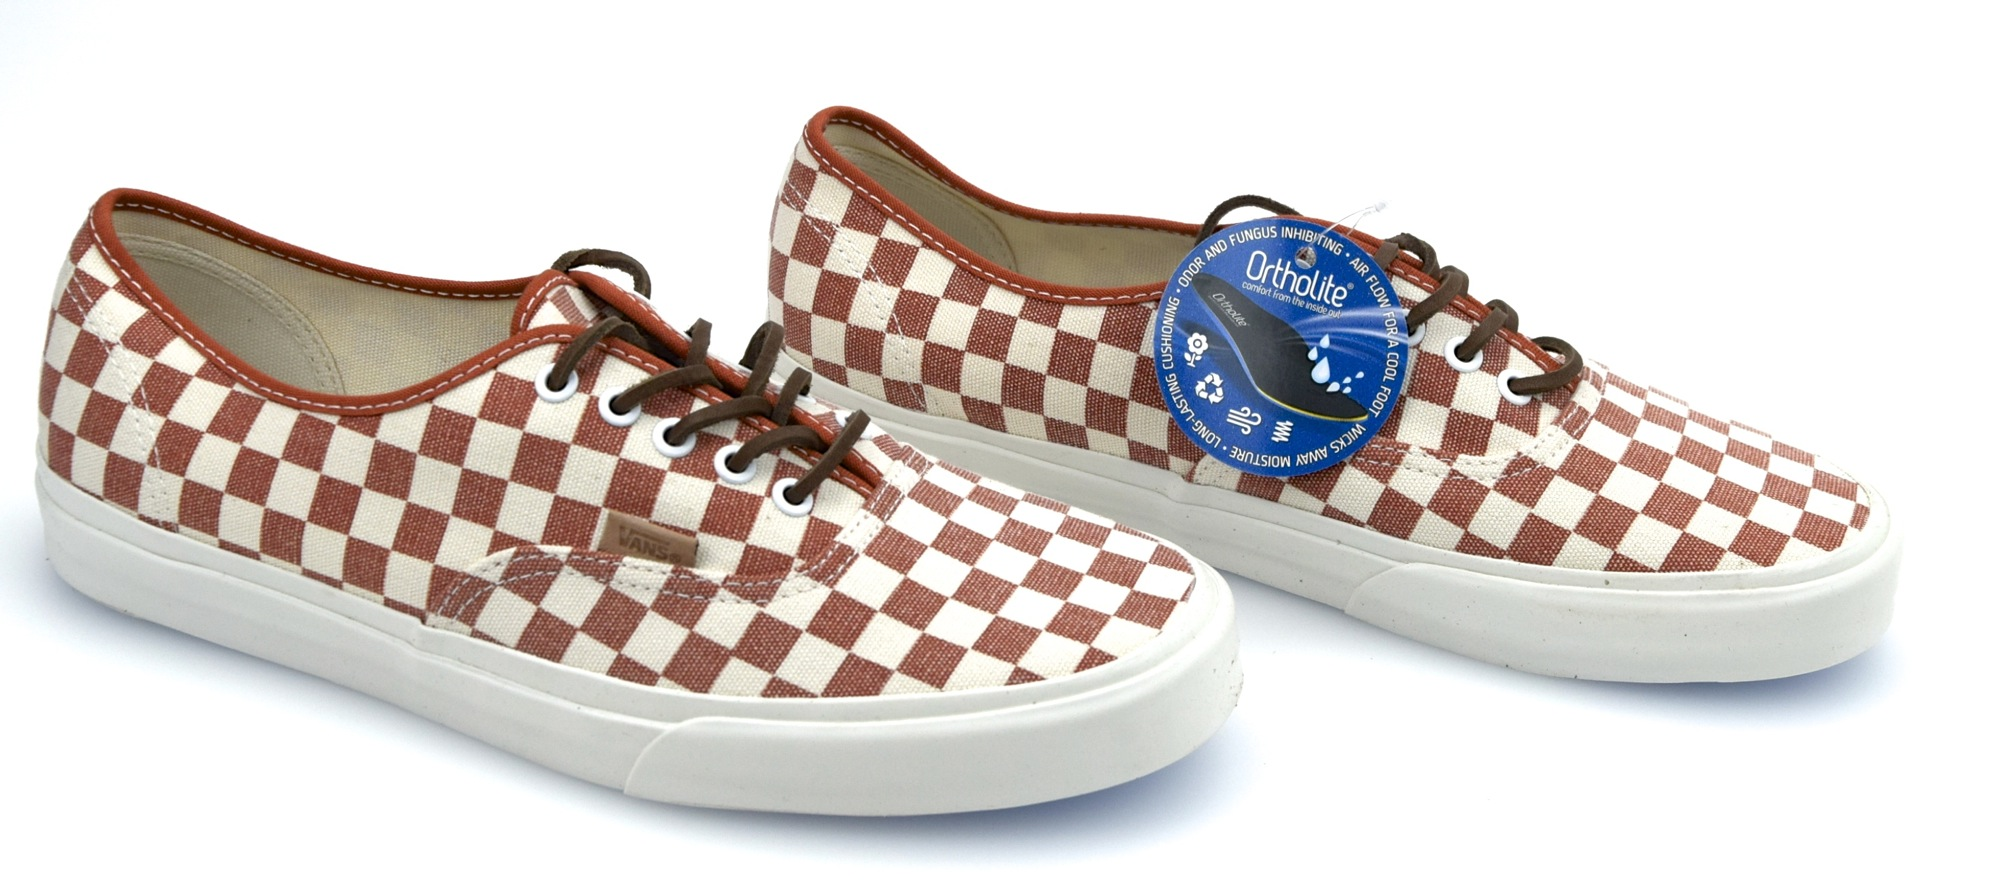 VANS MAN SNEAKER Schuhe CHECKED FANTASY CODE CODE FANTASY AUTHENTIC CA JWI8JH b1226e